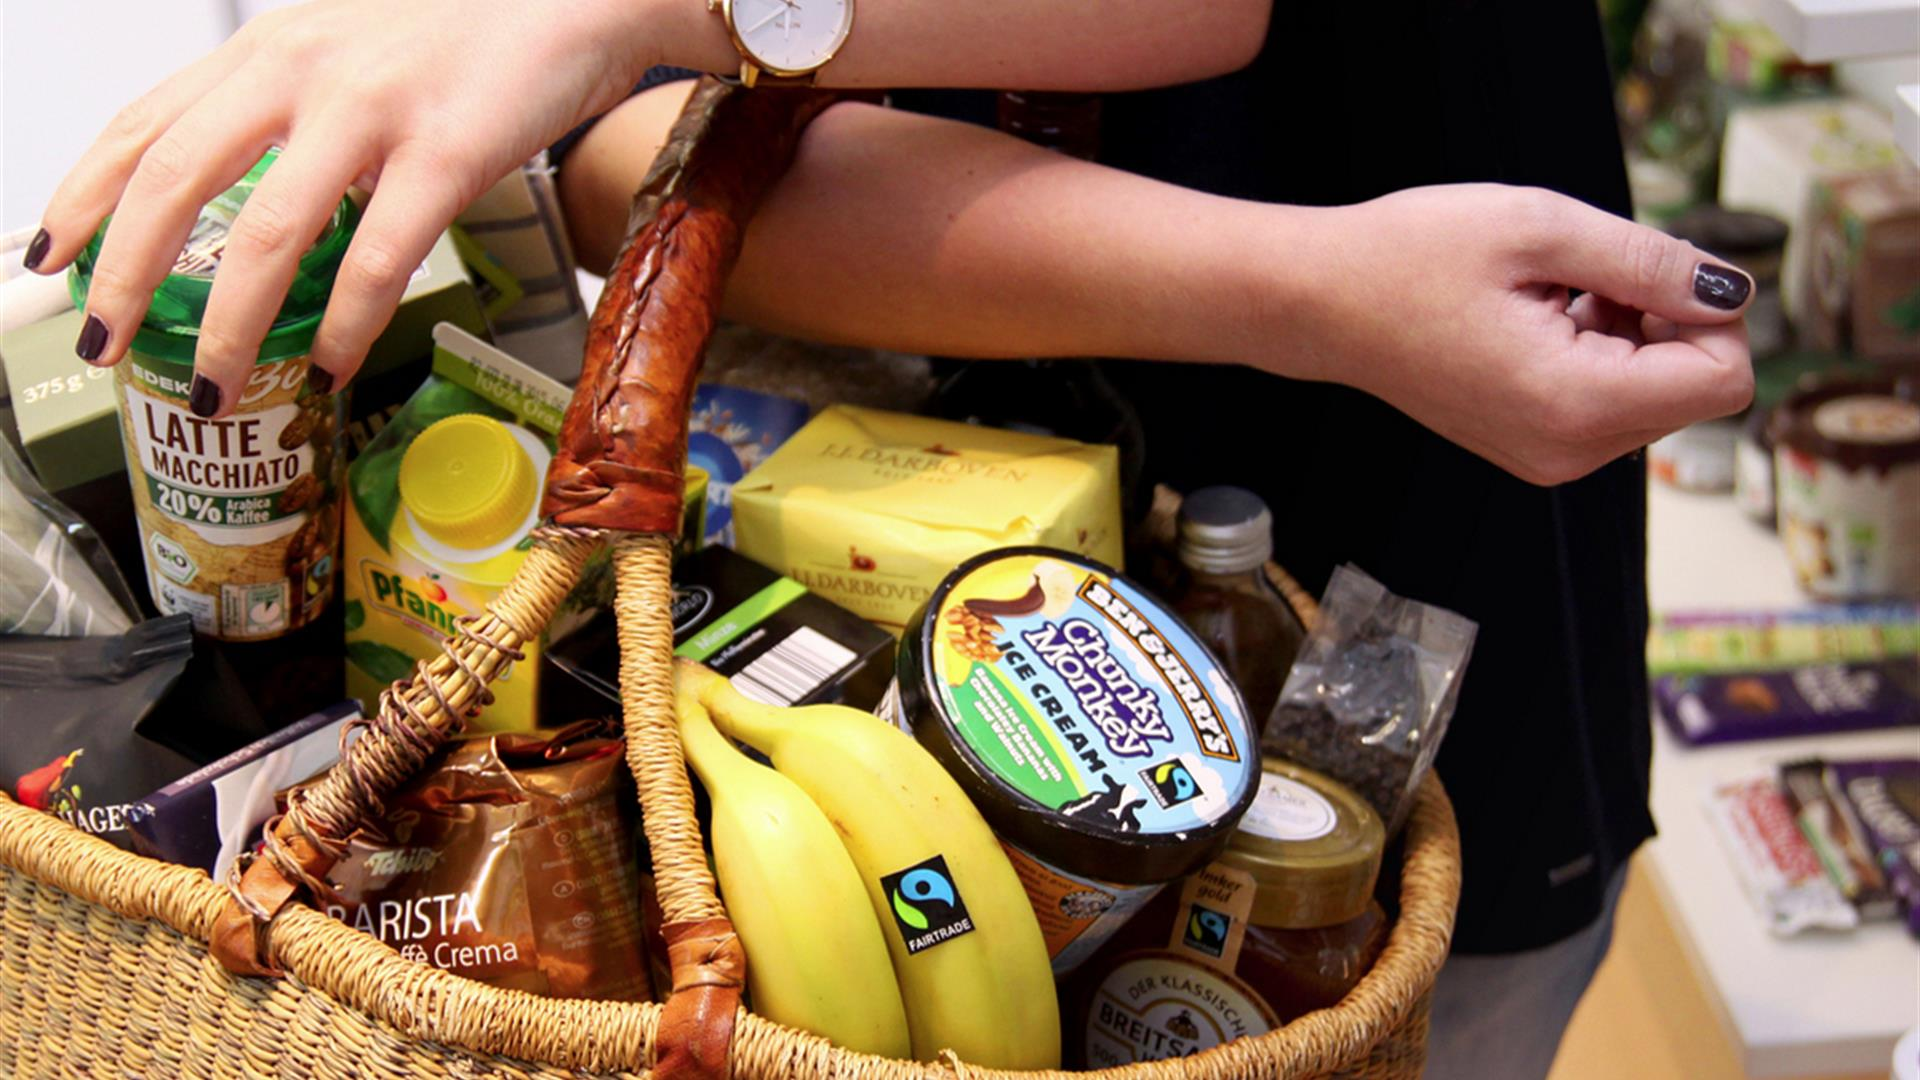 Fairtrade Consumi